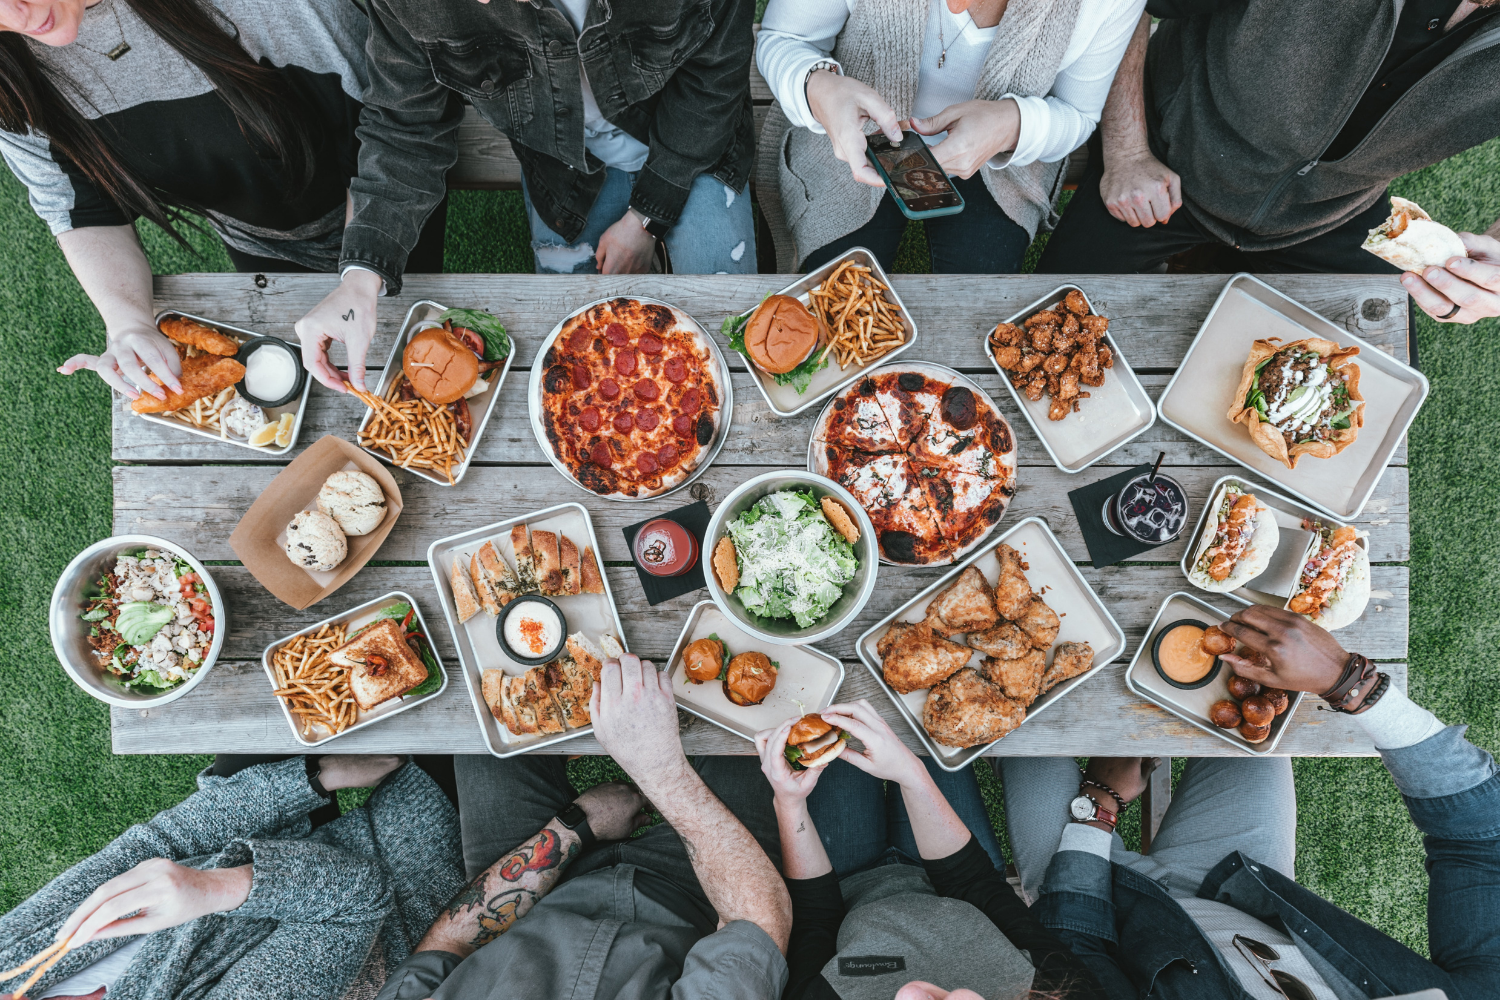 A group of people sitting around table full of plates of food; what is the gastrocolic reflex